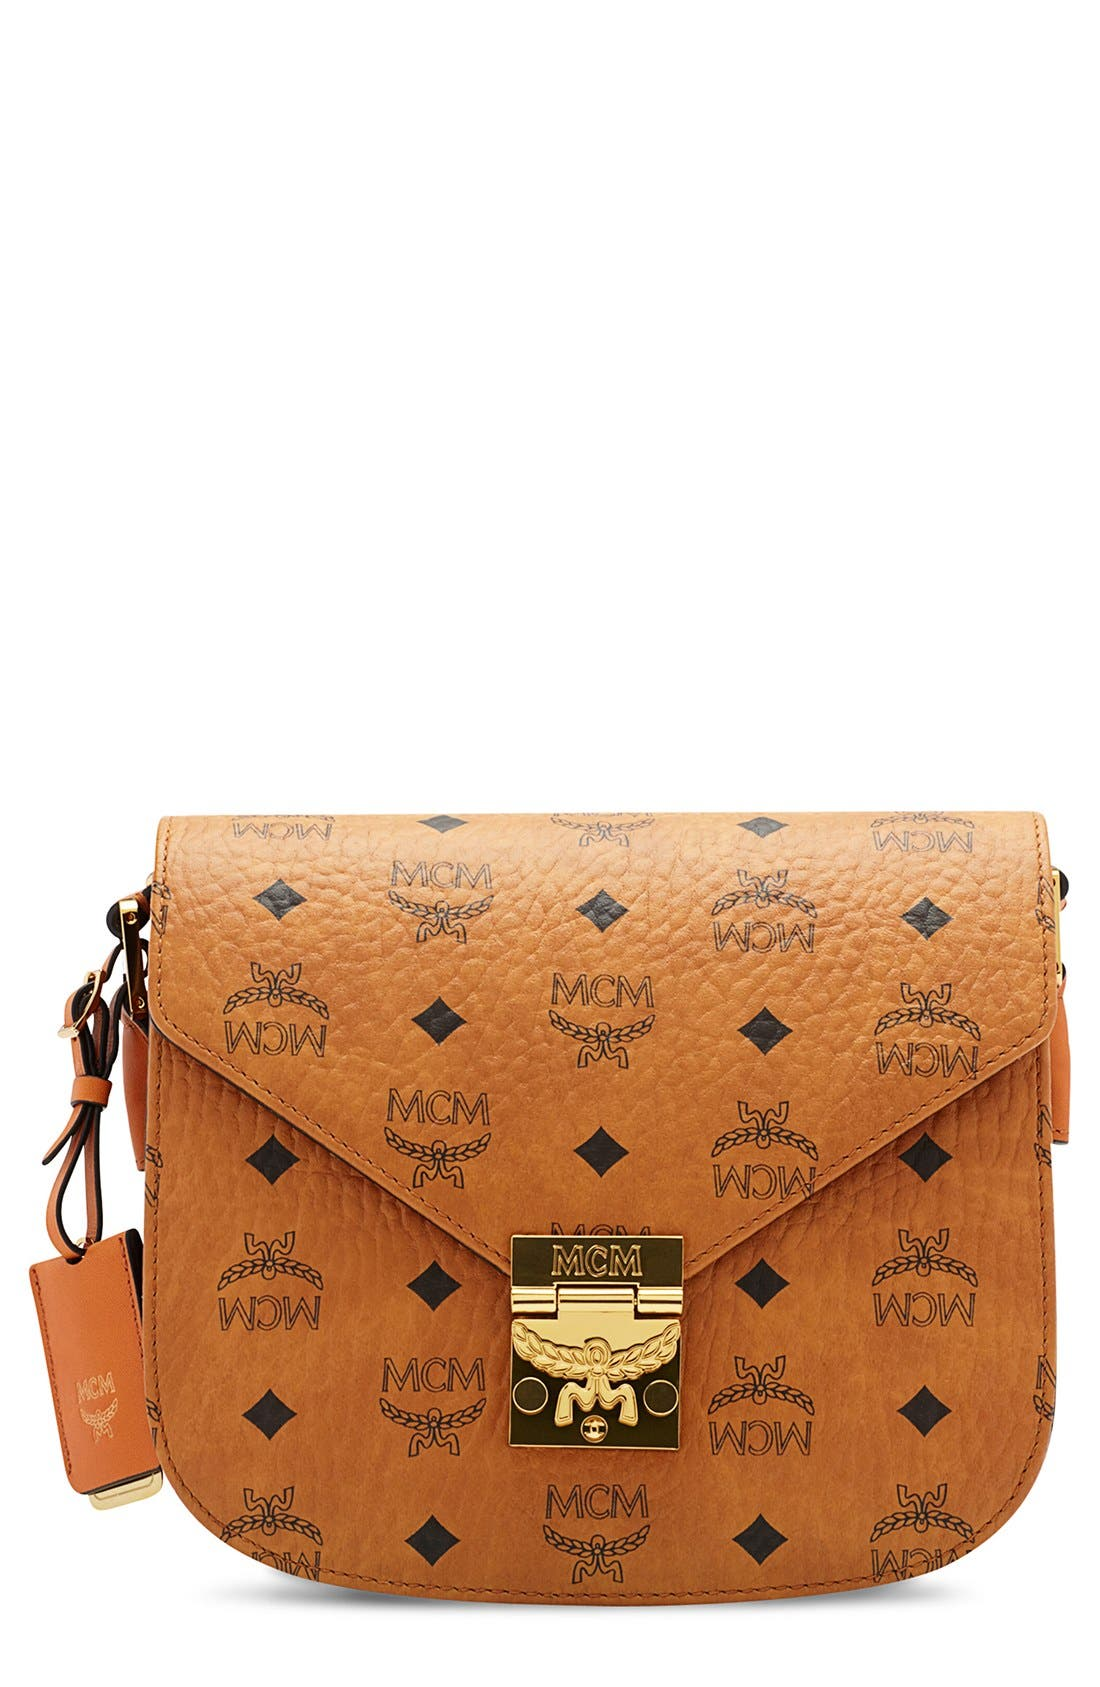 Alternate Image 1 Selected - MCM 'Small Patricia' Visetos Coated Canvas Crossbody Bag